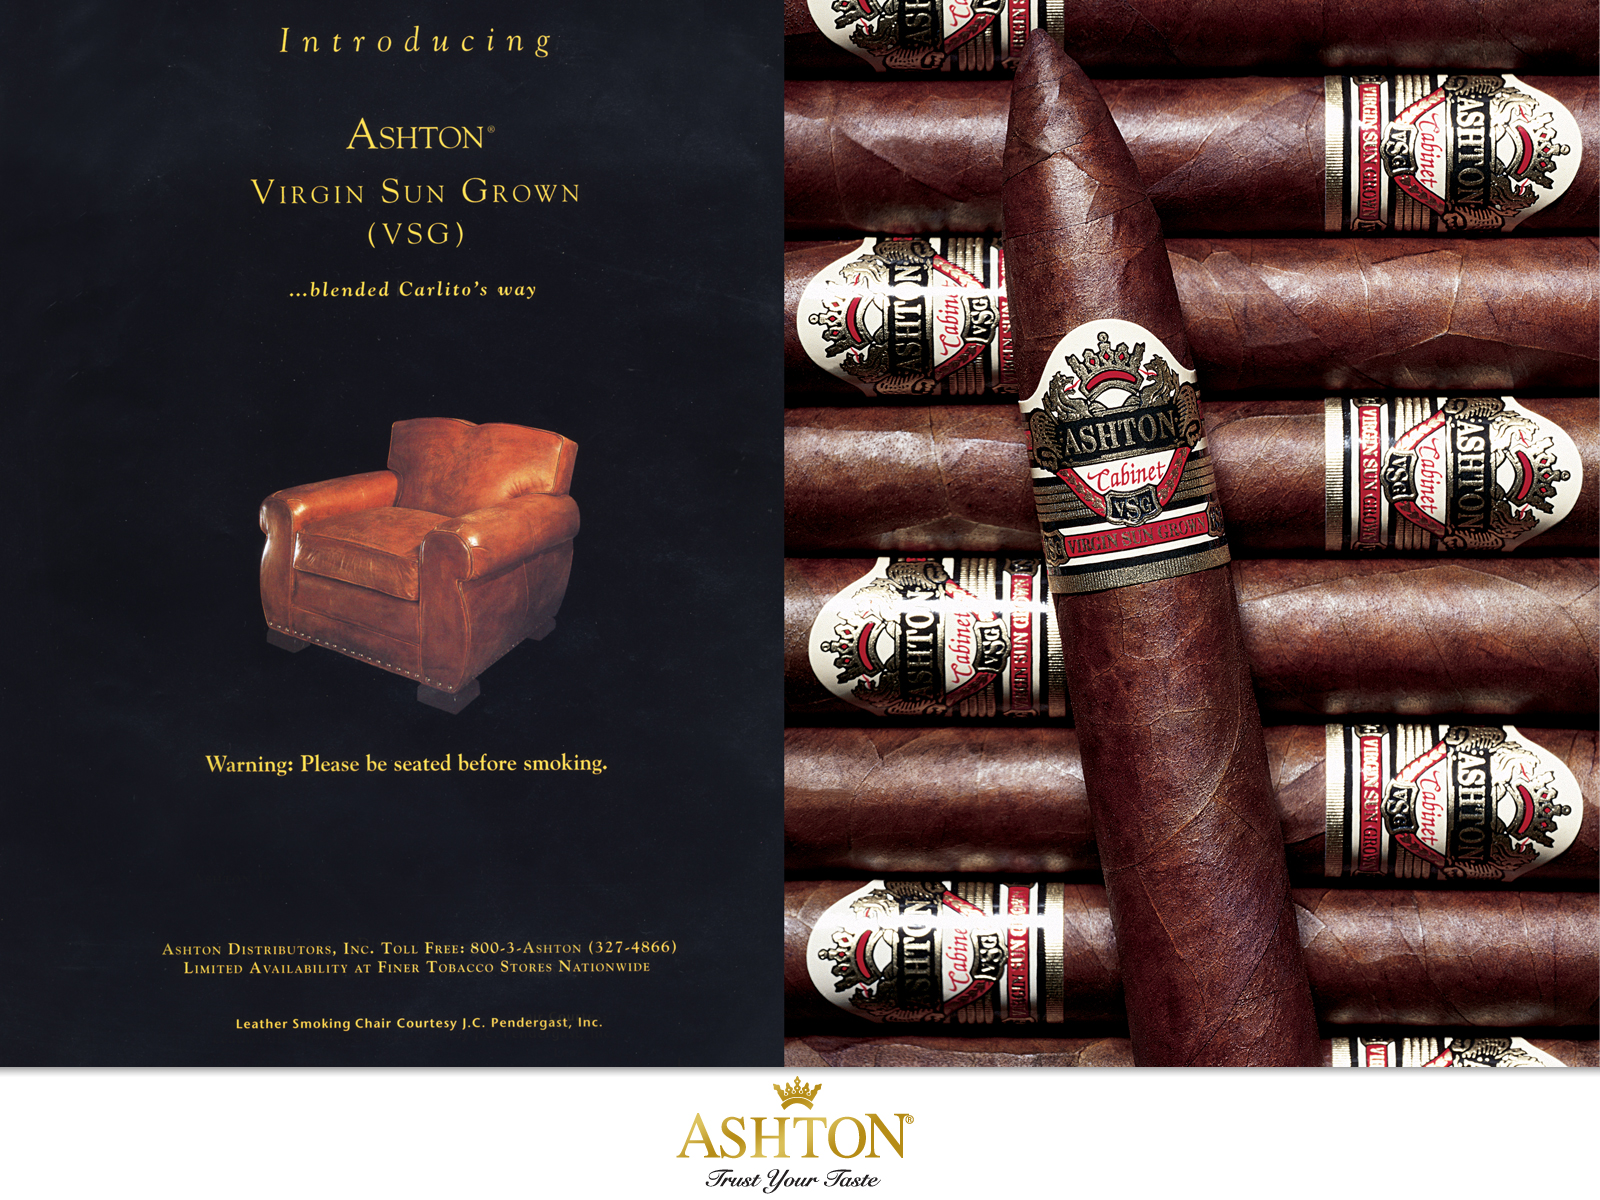 ashton_cigars_advertising_campaign_cigarmonkeys_5.jpg